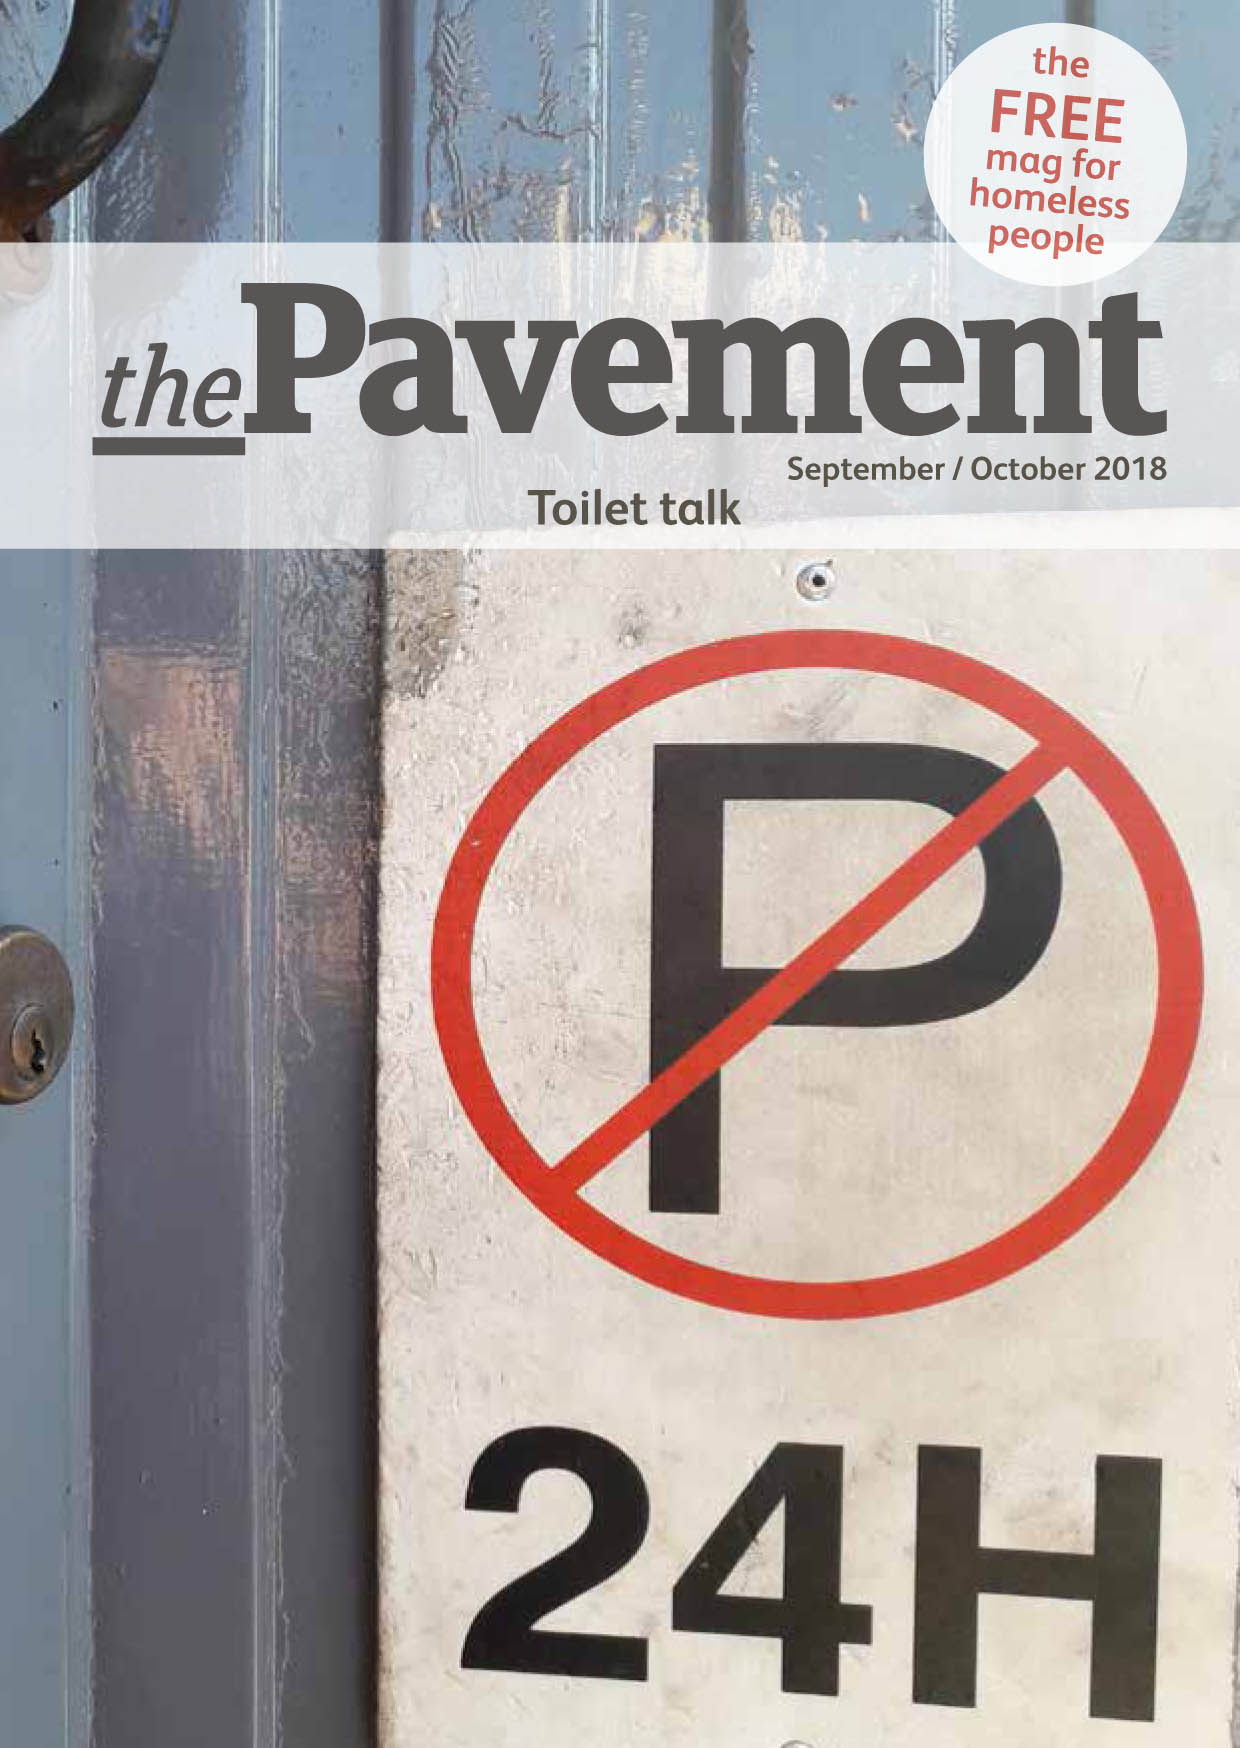 Sept-Oct 2018 : TOILET TALK